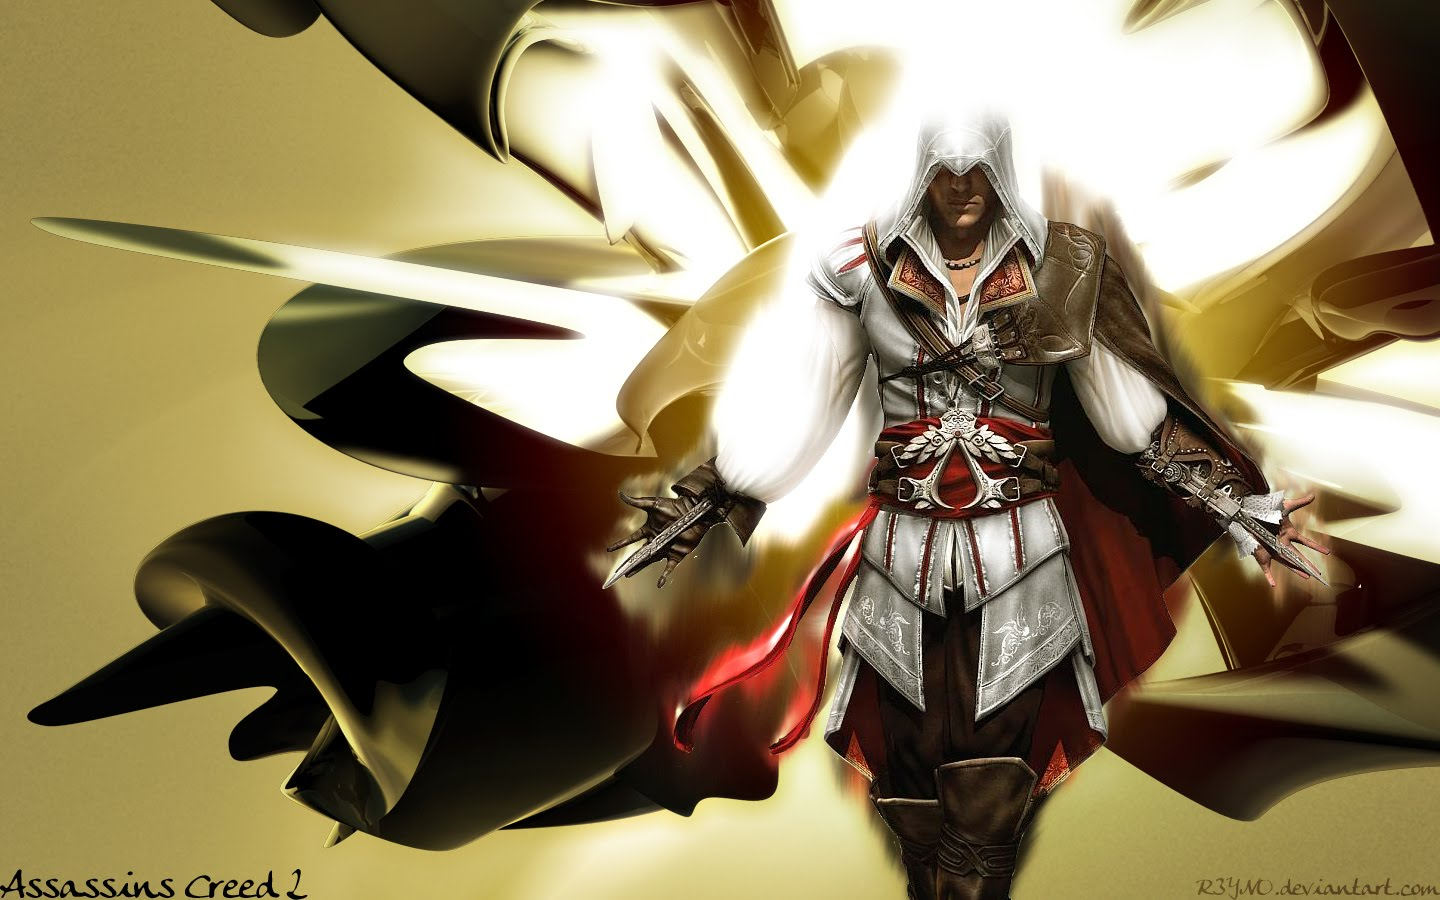 http://1.bp.blogspot.com/_Nd9gSdAA0og/S6_60_7olfI/AAAAAAAAFs4/beEli-PMyYI/s1600/assassins-creed-2-xbox-playstation-ps3-1-wallpaper-r3ym.jpg